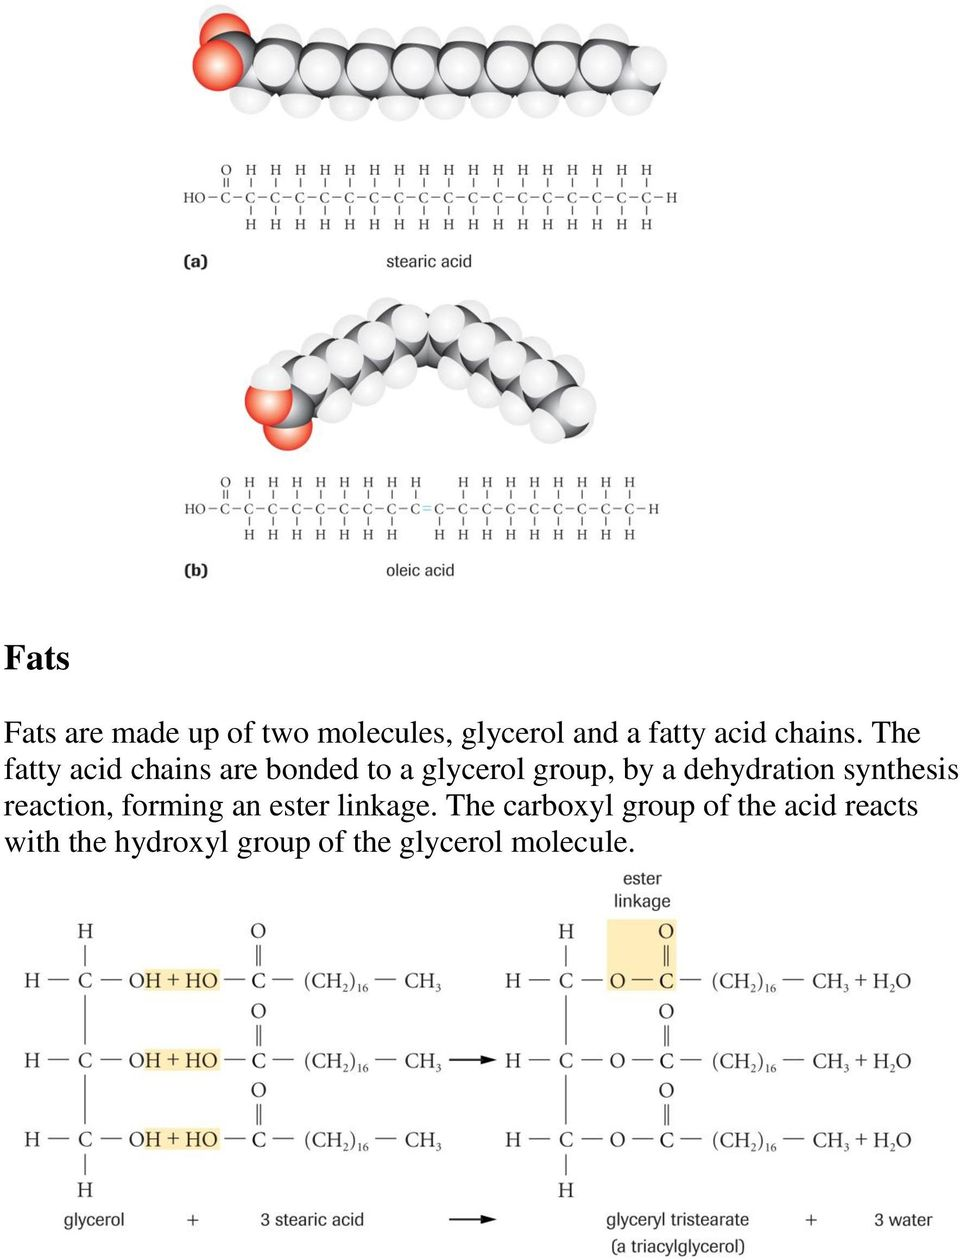 The fatty acid chains are bonded to a glycerol group, by a